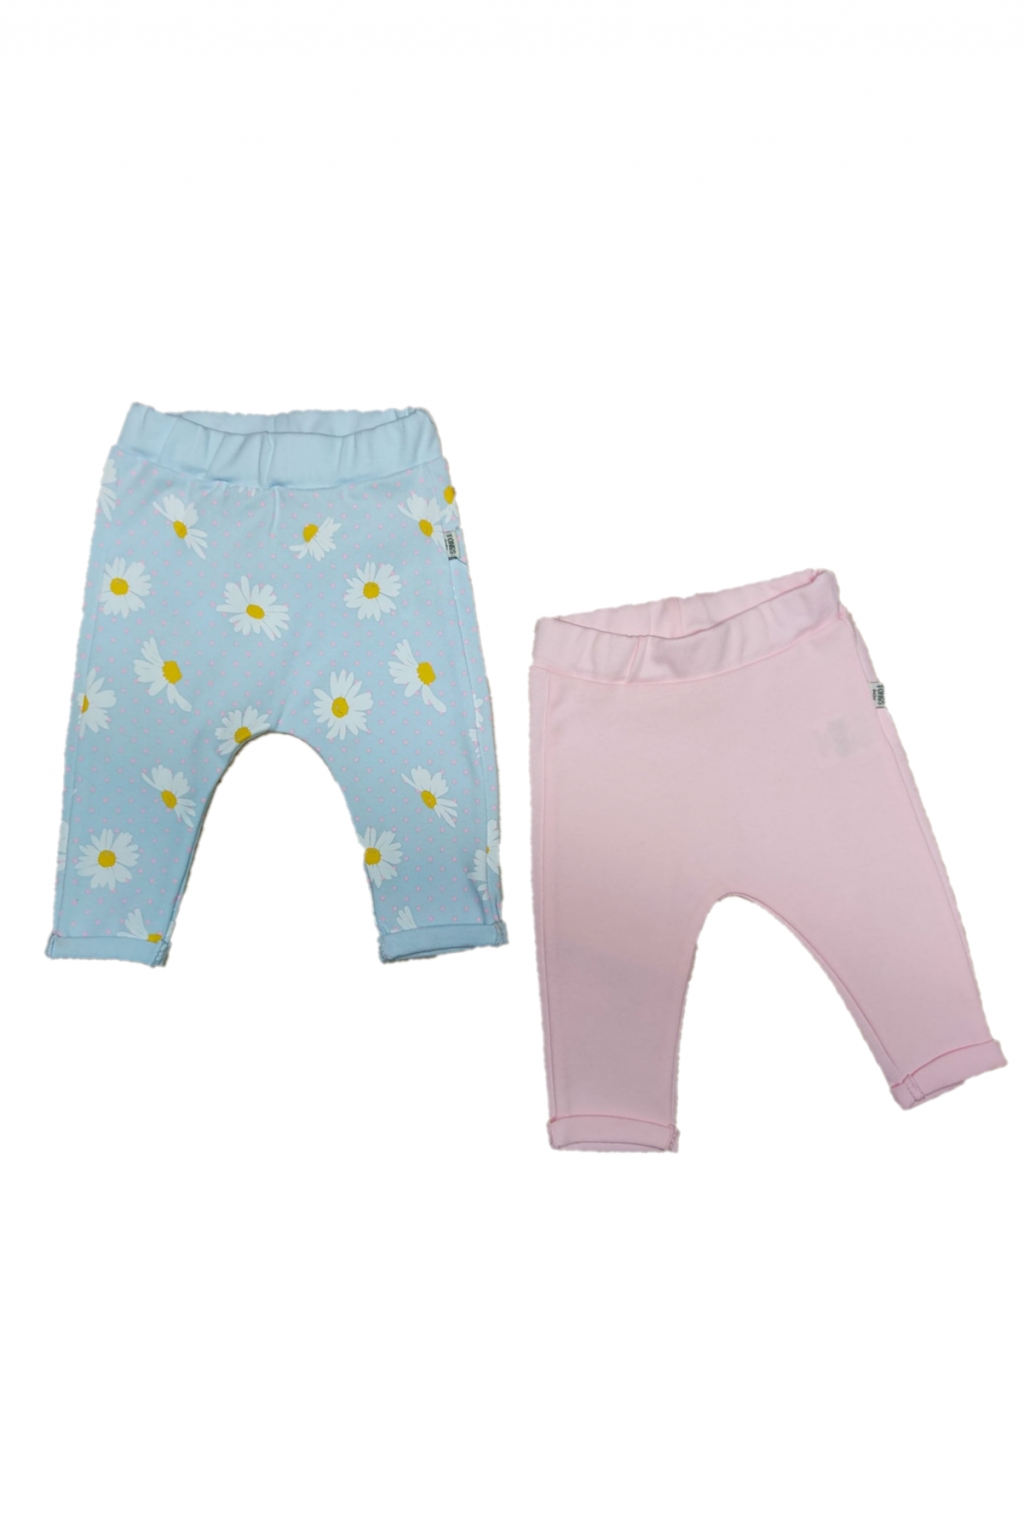 Pants baby girl 2 pieces